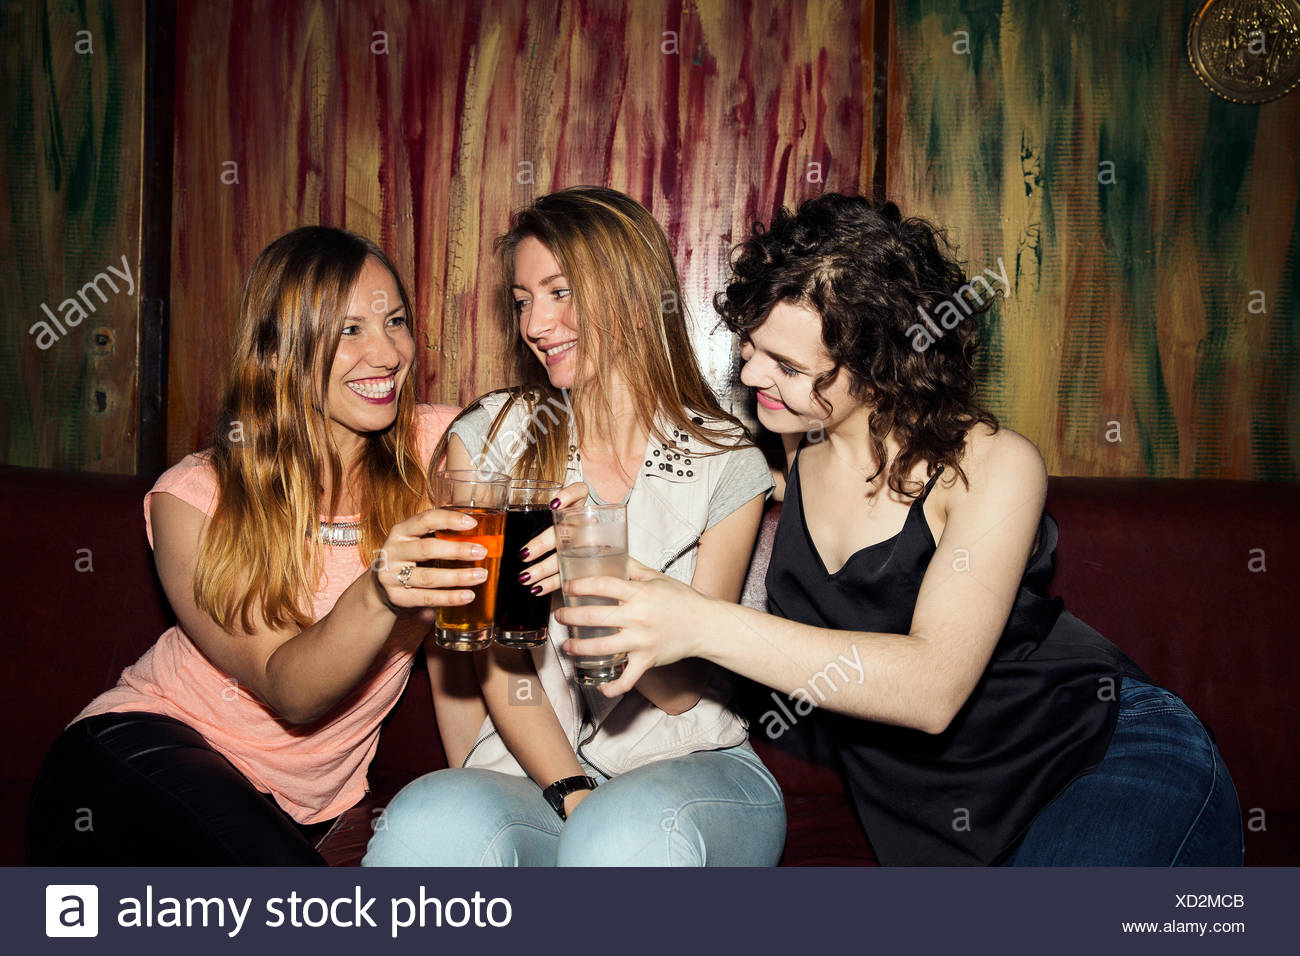 Three adult female friends raising a glass whilst sitting in bar - Stock Image